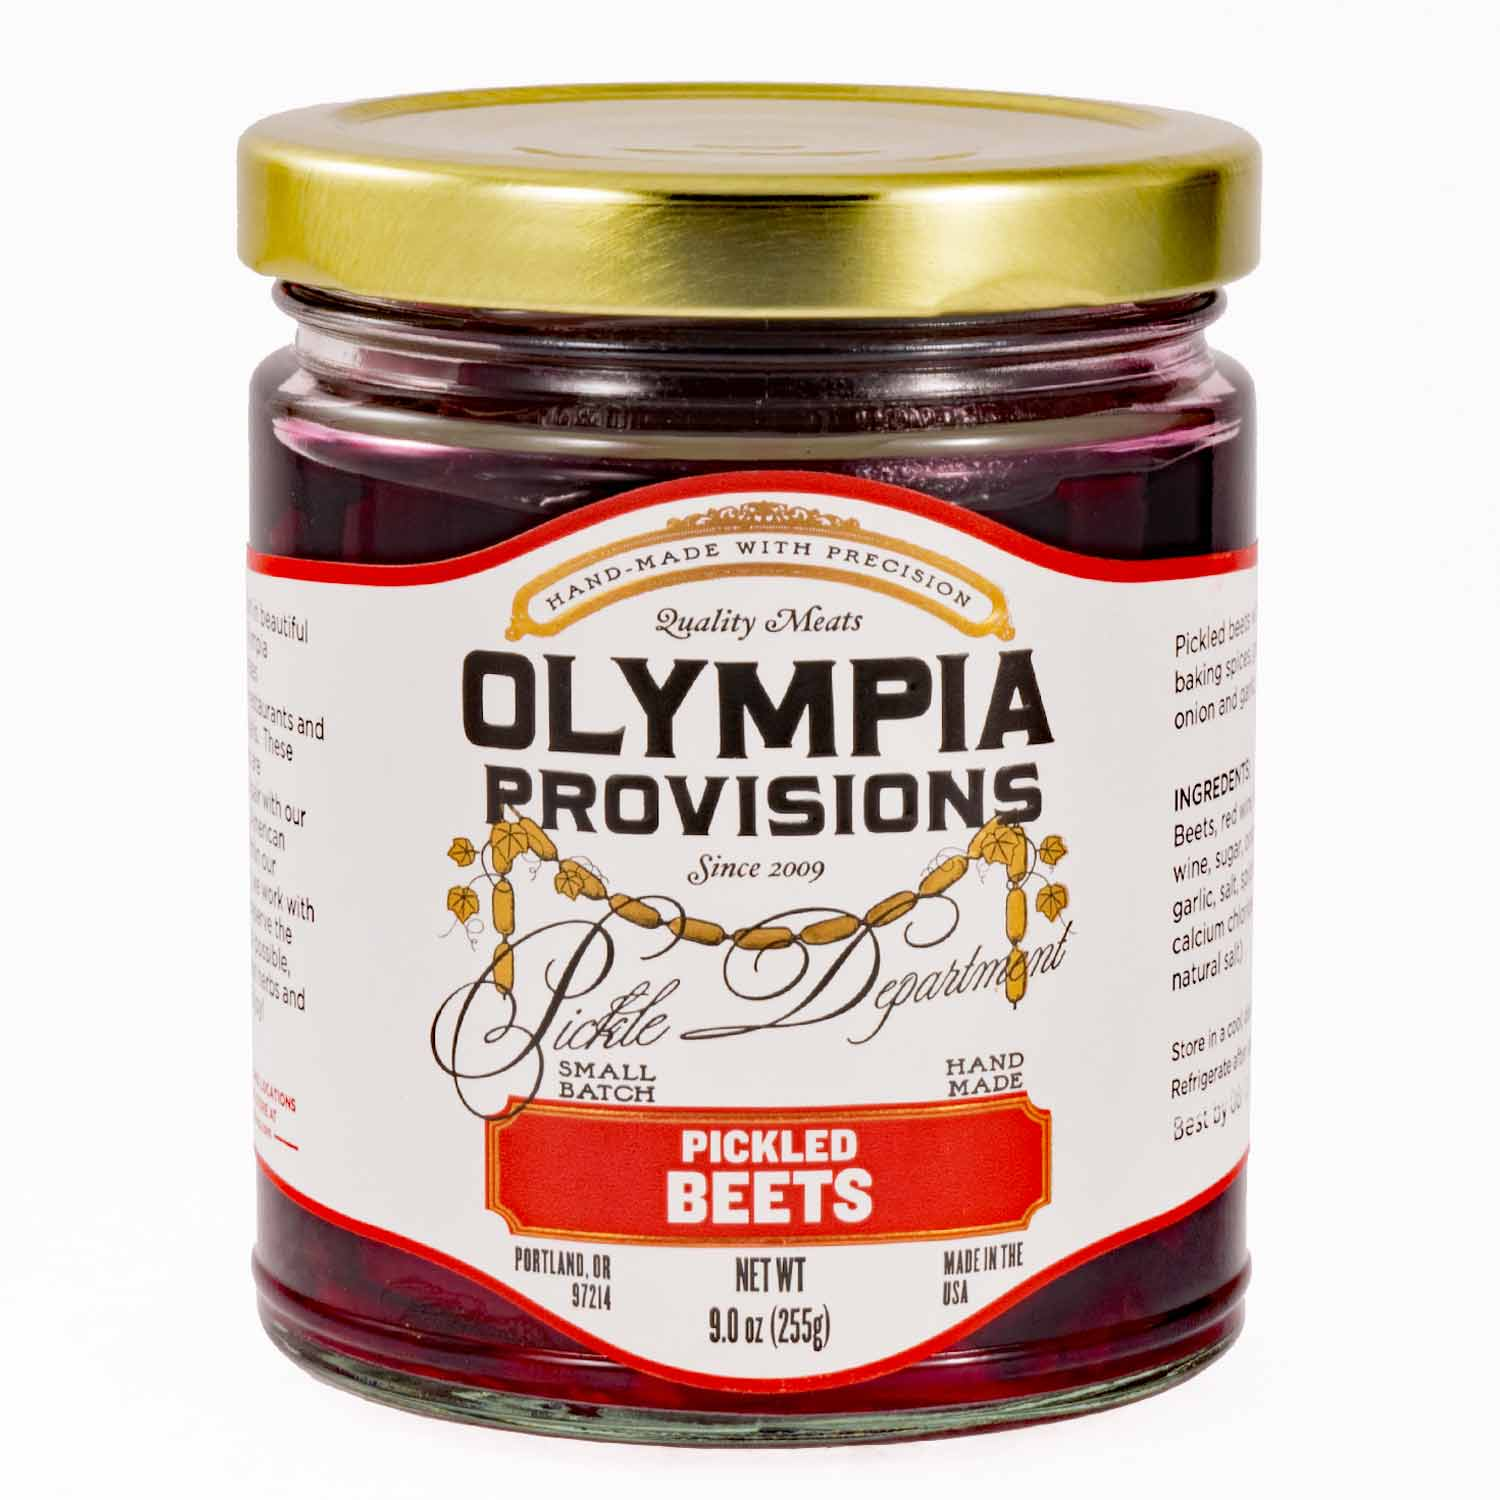 Olympia-Provisions-Beets.jpg